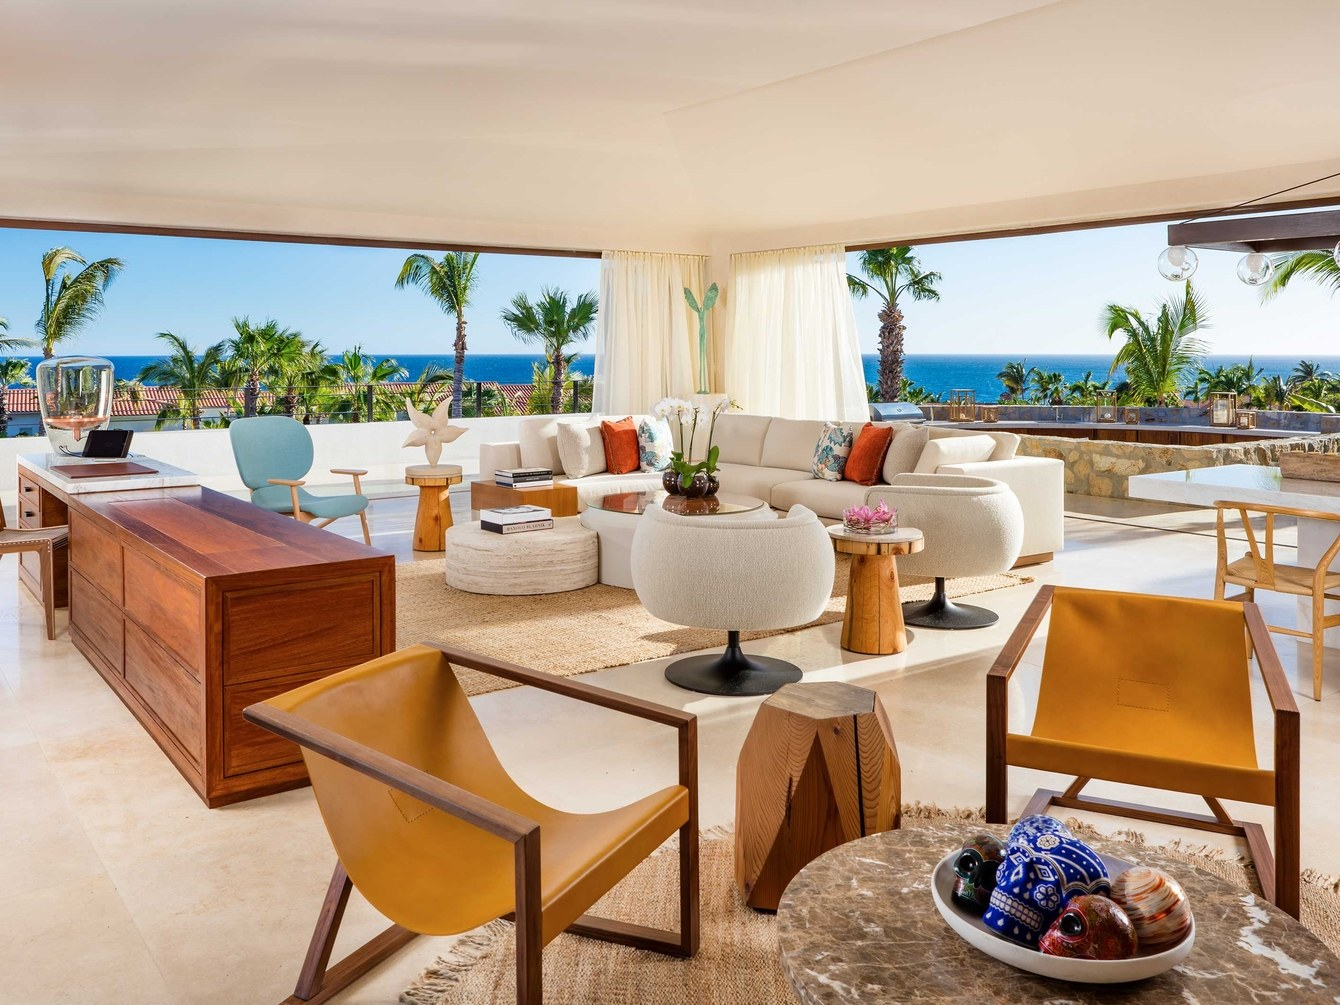 The Most Expensive Suite at Cabo's One&Only Palmilla Resort by AD Home Decor Download Free eBooks – All You Need To Know About Home Decor The Most Expensive Suite at Cabo   s OneOnly Palmilla Resort by AD cover Home Decor Download Free eBooks – All You Need To Know About Home Decor The Most Expensive Suite at Cabo E2 80 99s OneOnly Palmilla Resort by AD cover